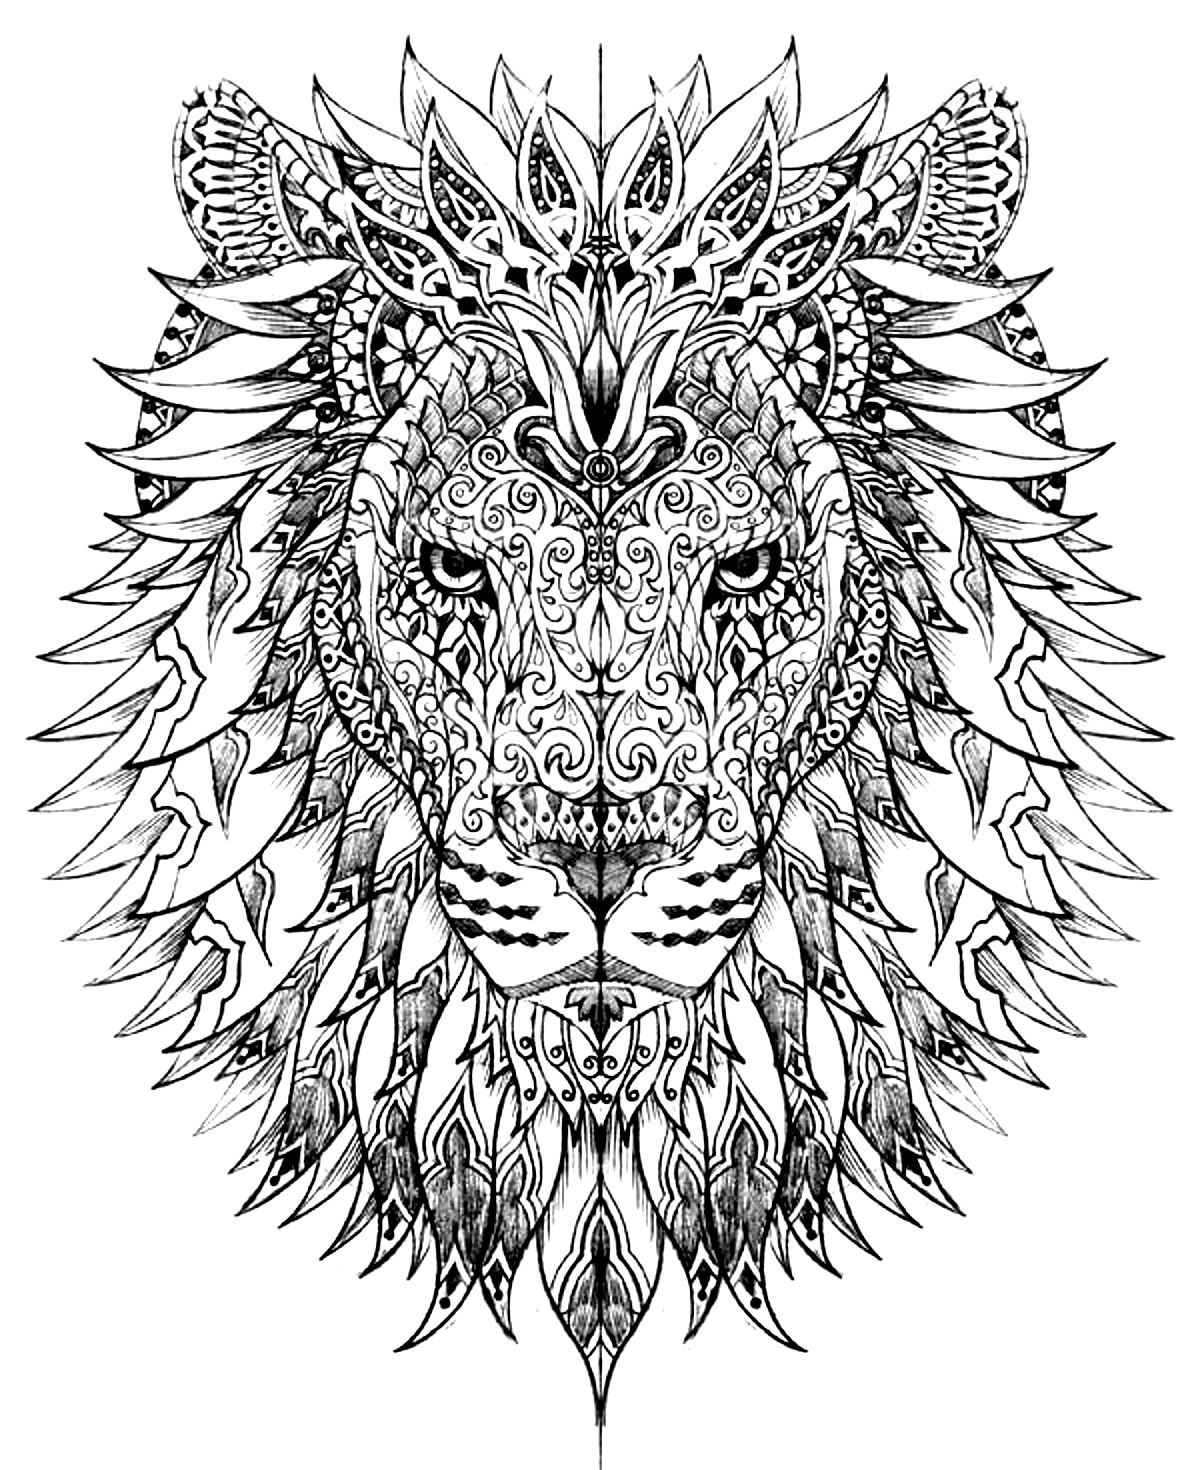 Coloring pictures for adults - Lion Head Drawn With Very Smart And Harmonious Patterns